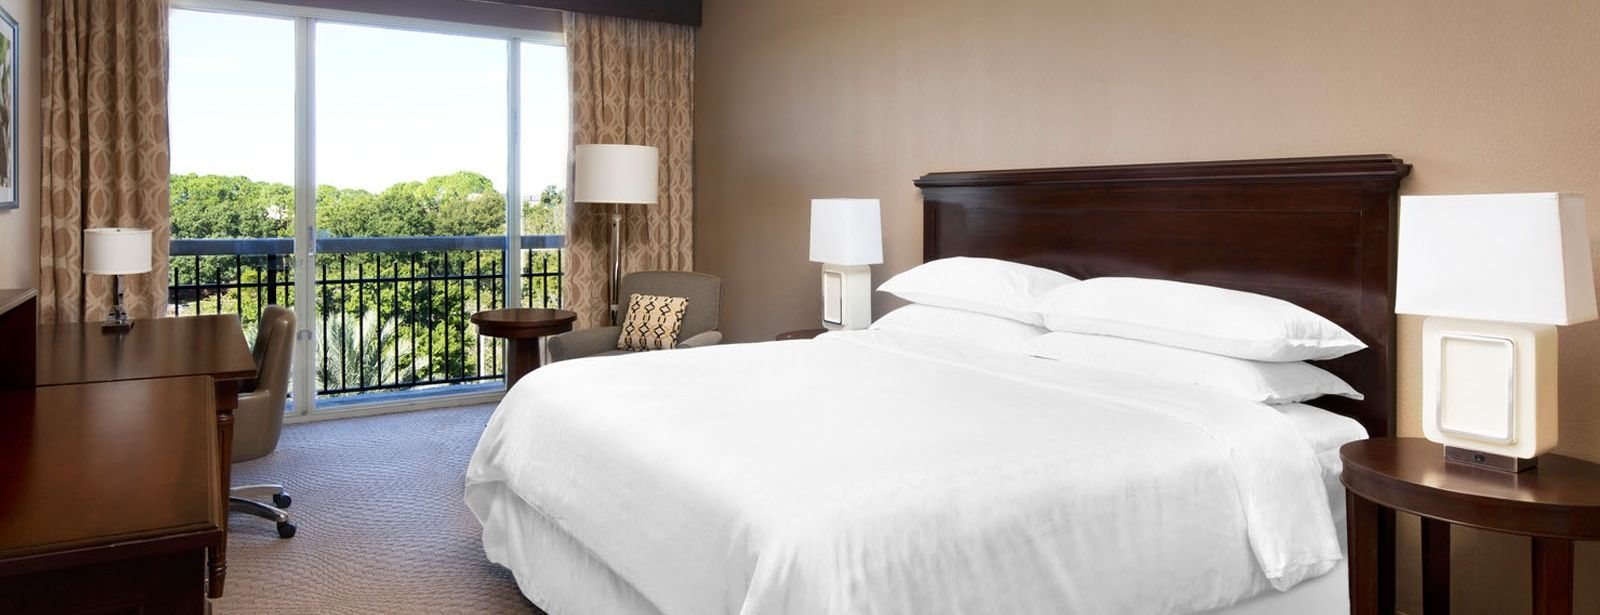 One Bedroom Suite | Sheraton Orlando North Hotel